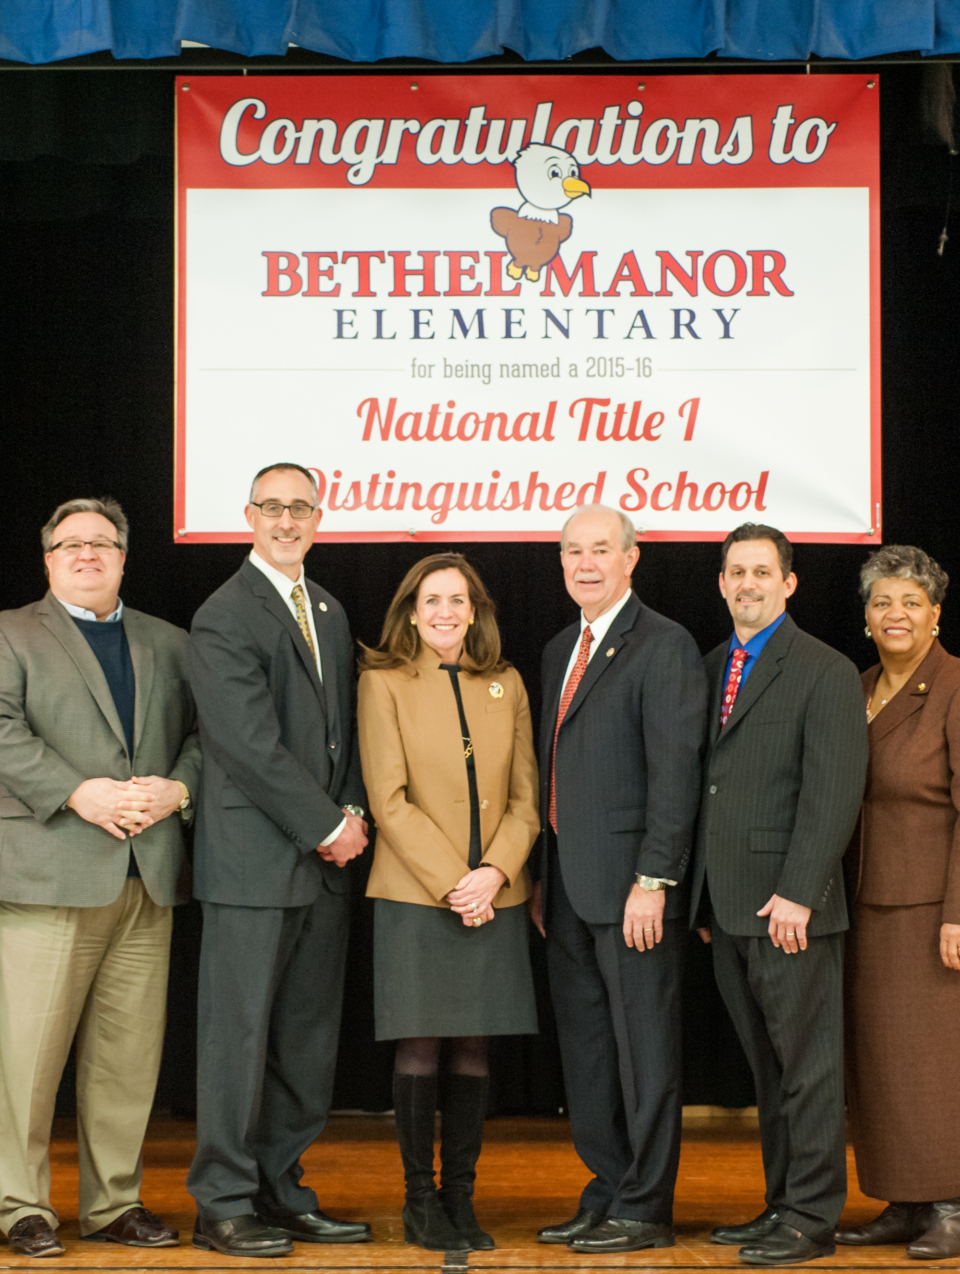 The new logo was implemented just before receiving national recognition for their hard work as a Title I school. The First Lady of Virginia, Dorothy McAuliffe, spent the day with school board members, the superintendent, and school administration.